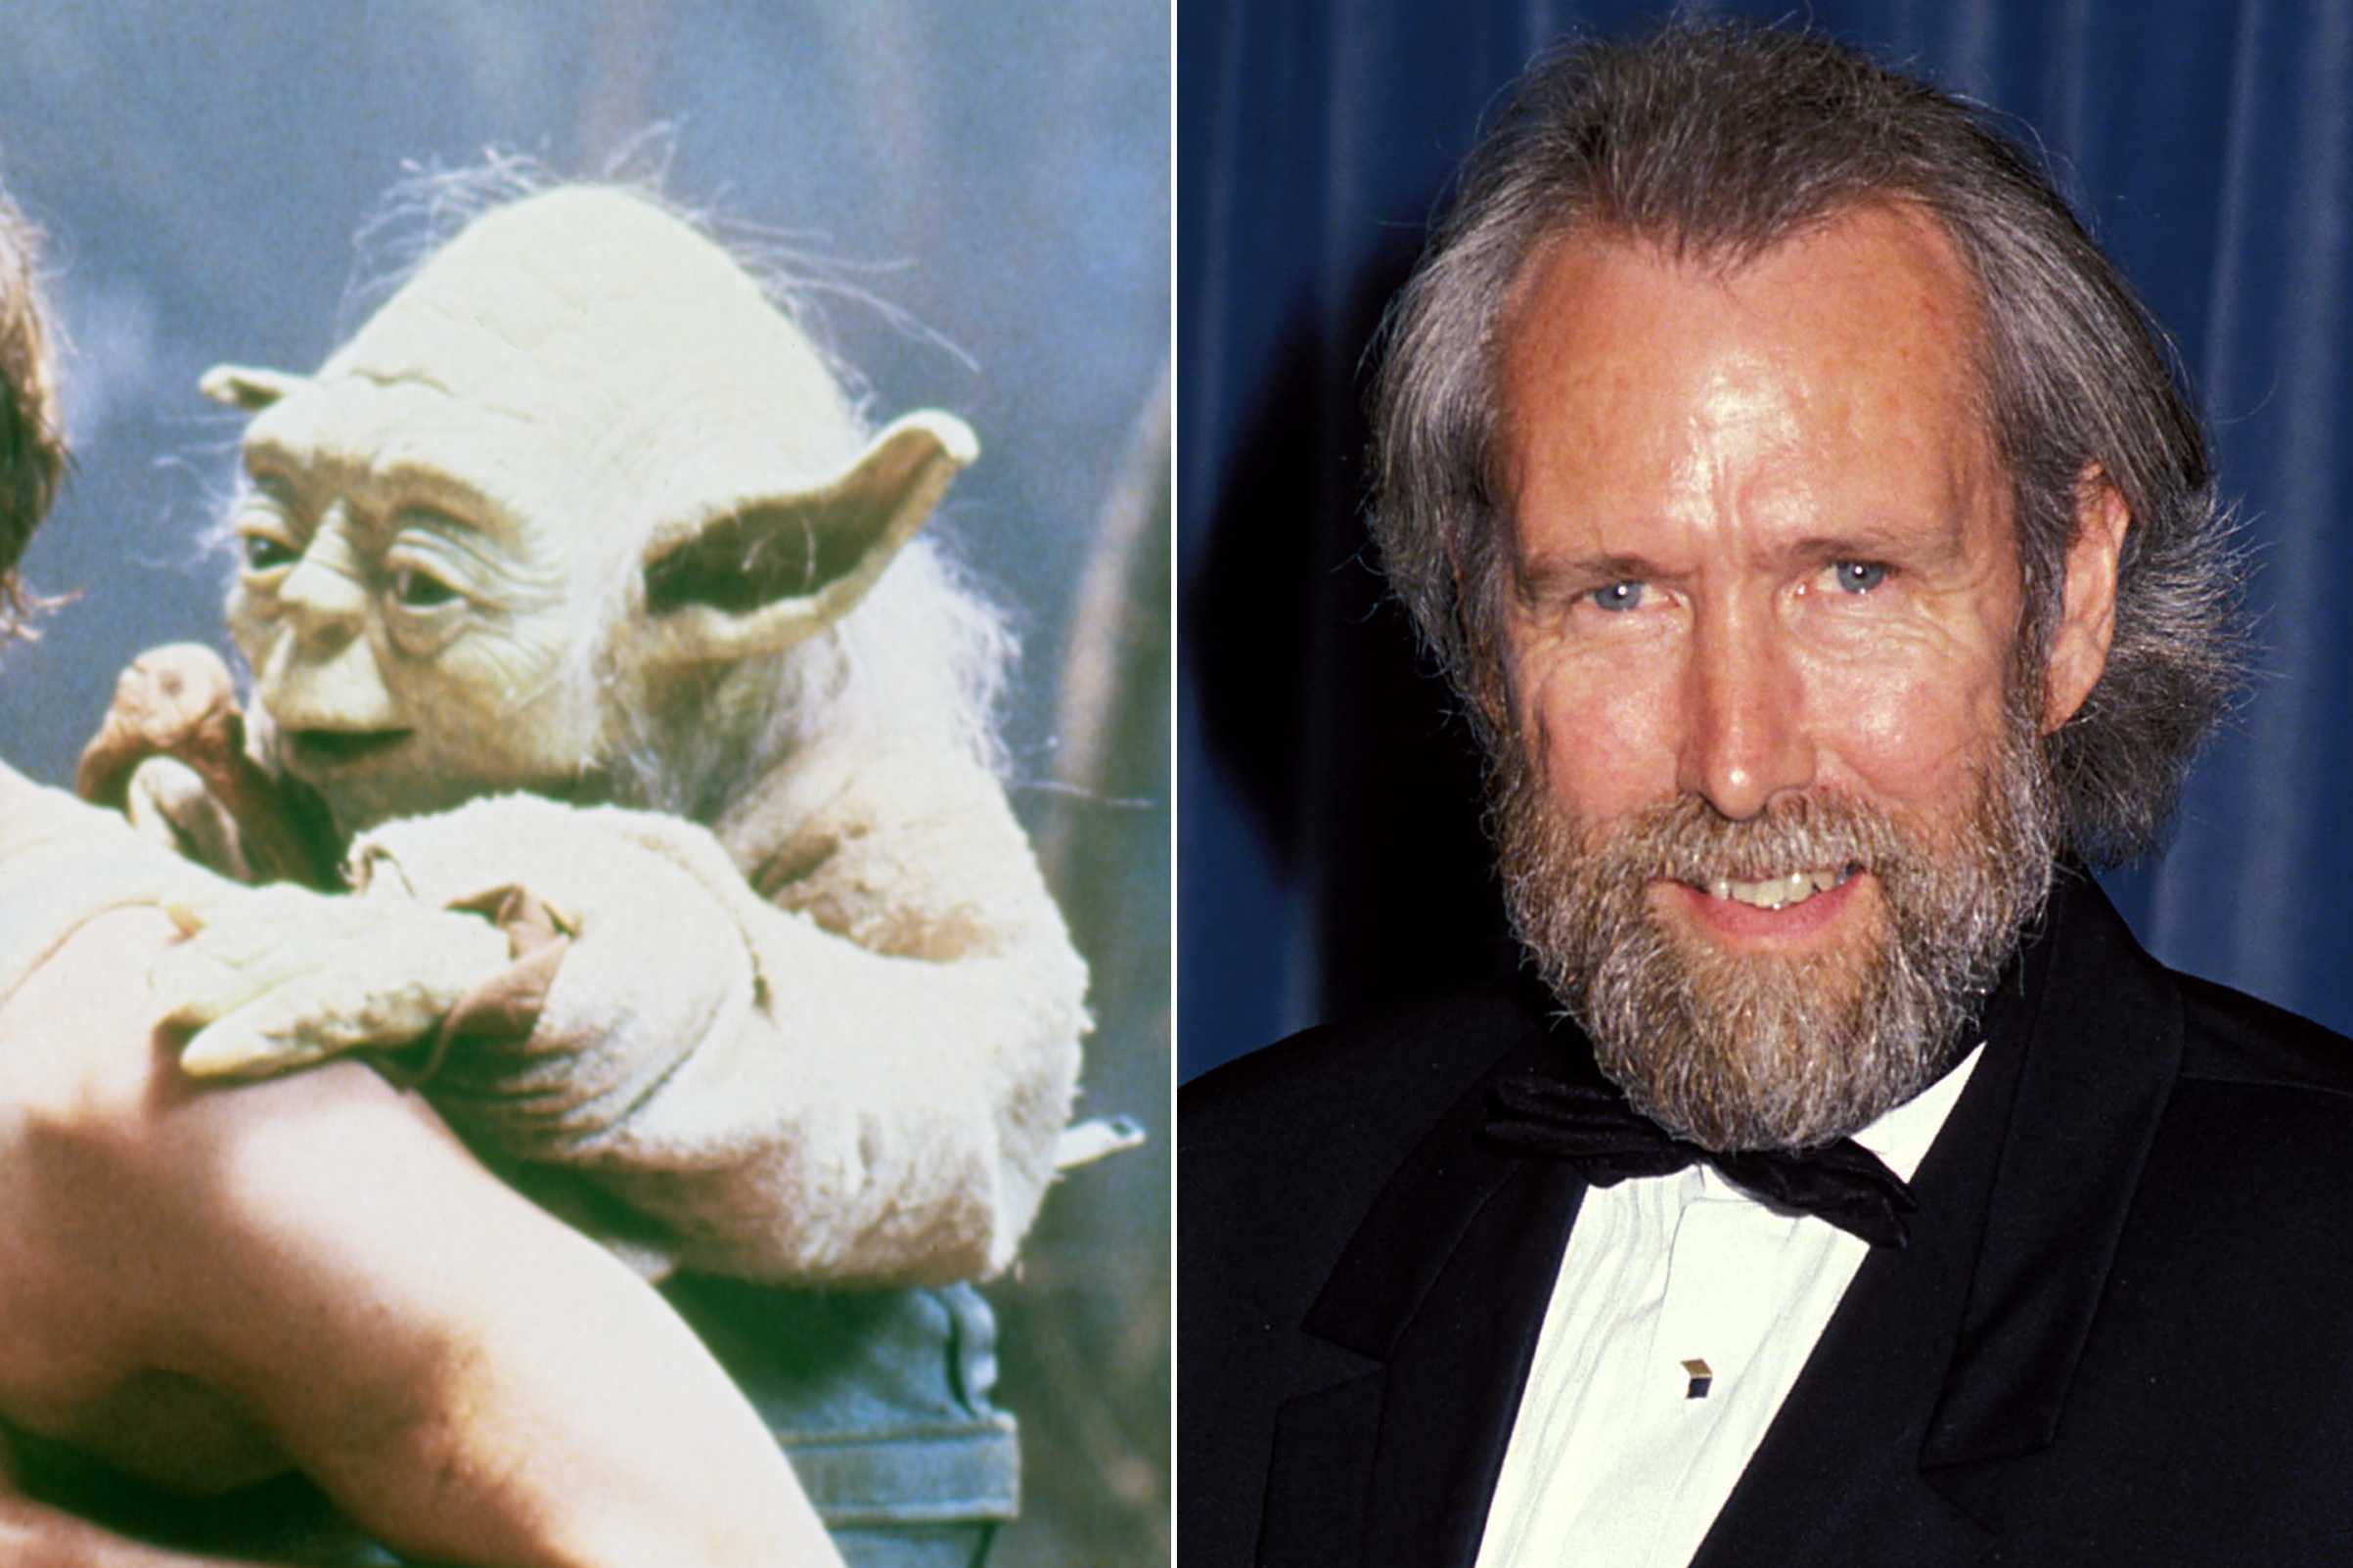 Jim Henson was almost cast as Yoda in Star Wars